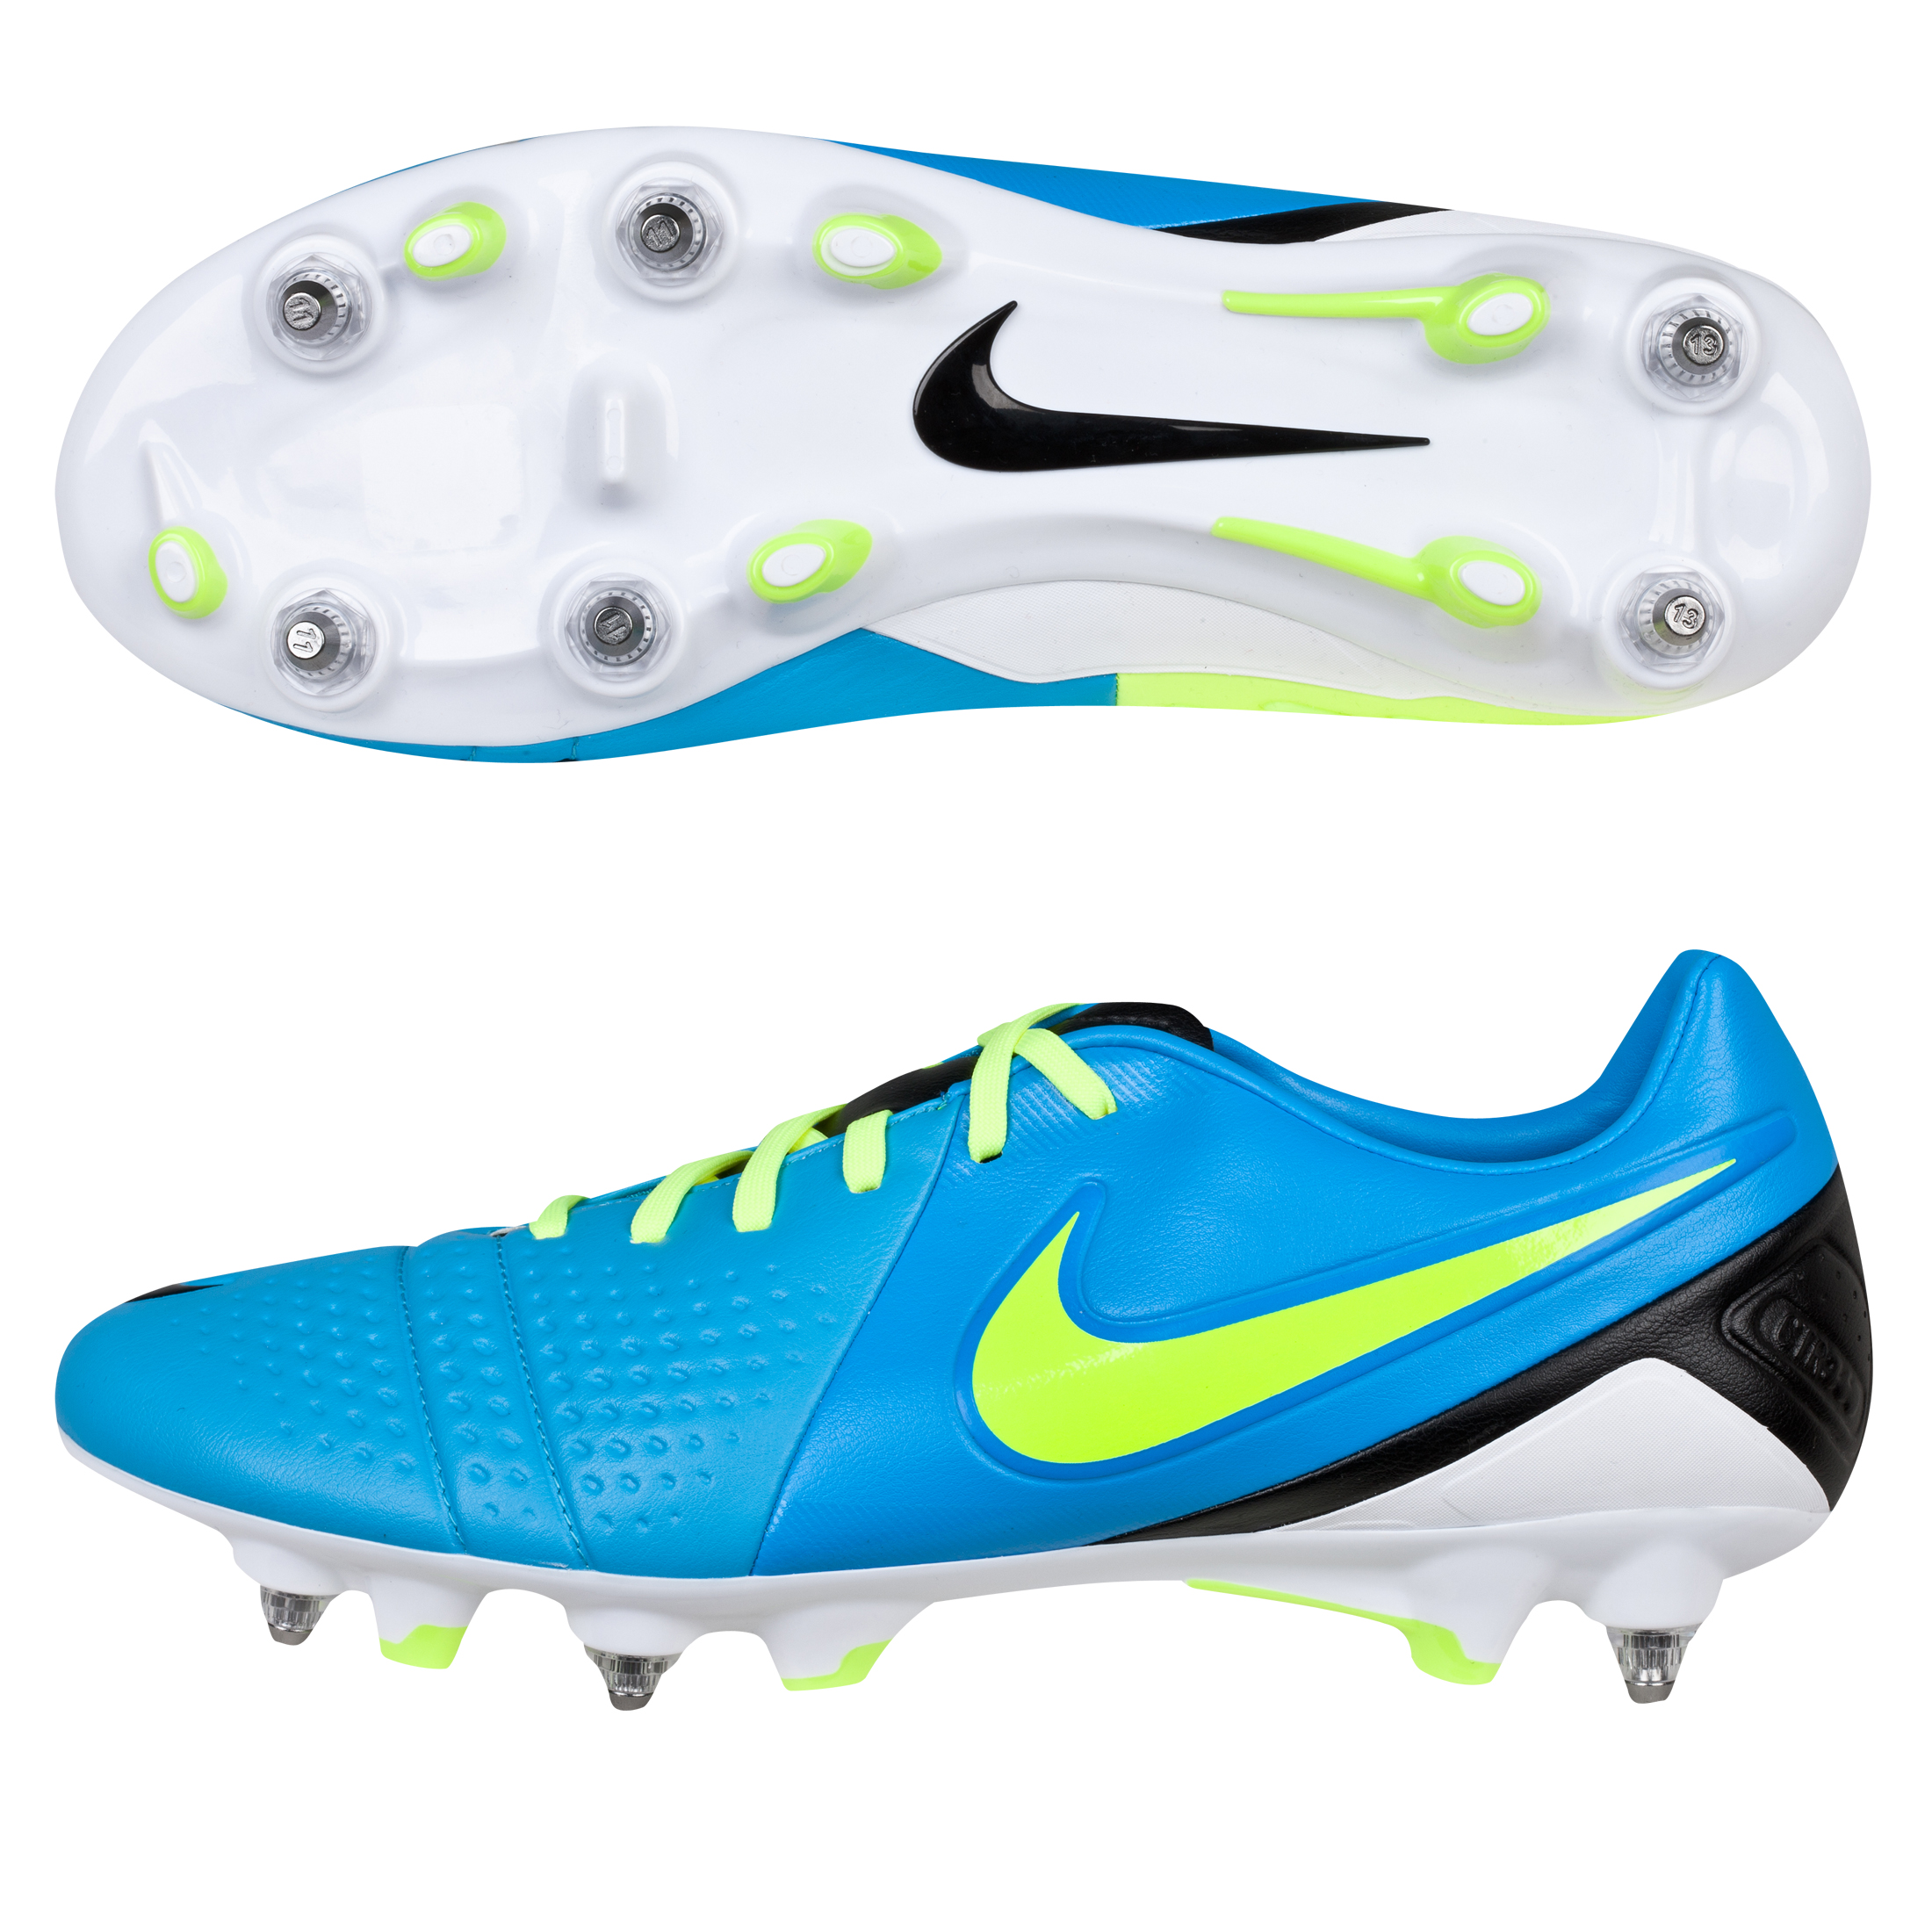 Nike CTR360 Trequartista 3 Soft Ground Pro Football Boots Blue